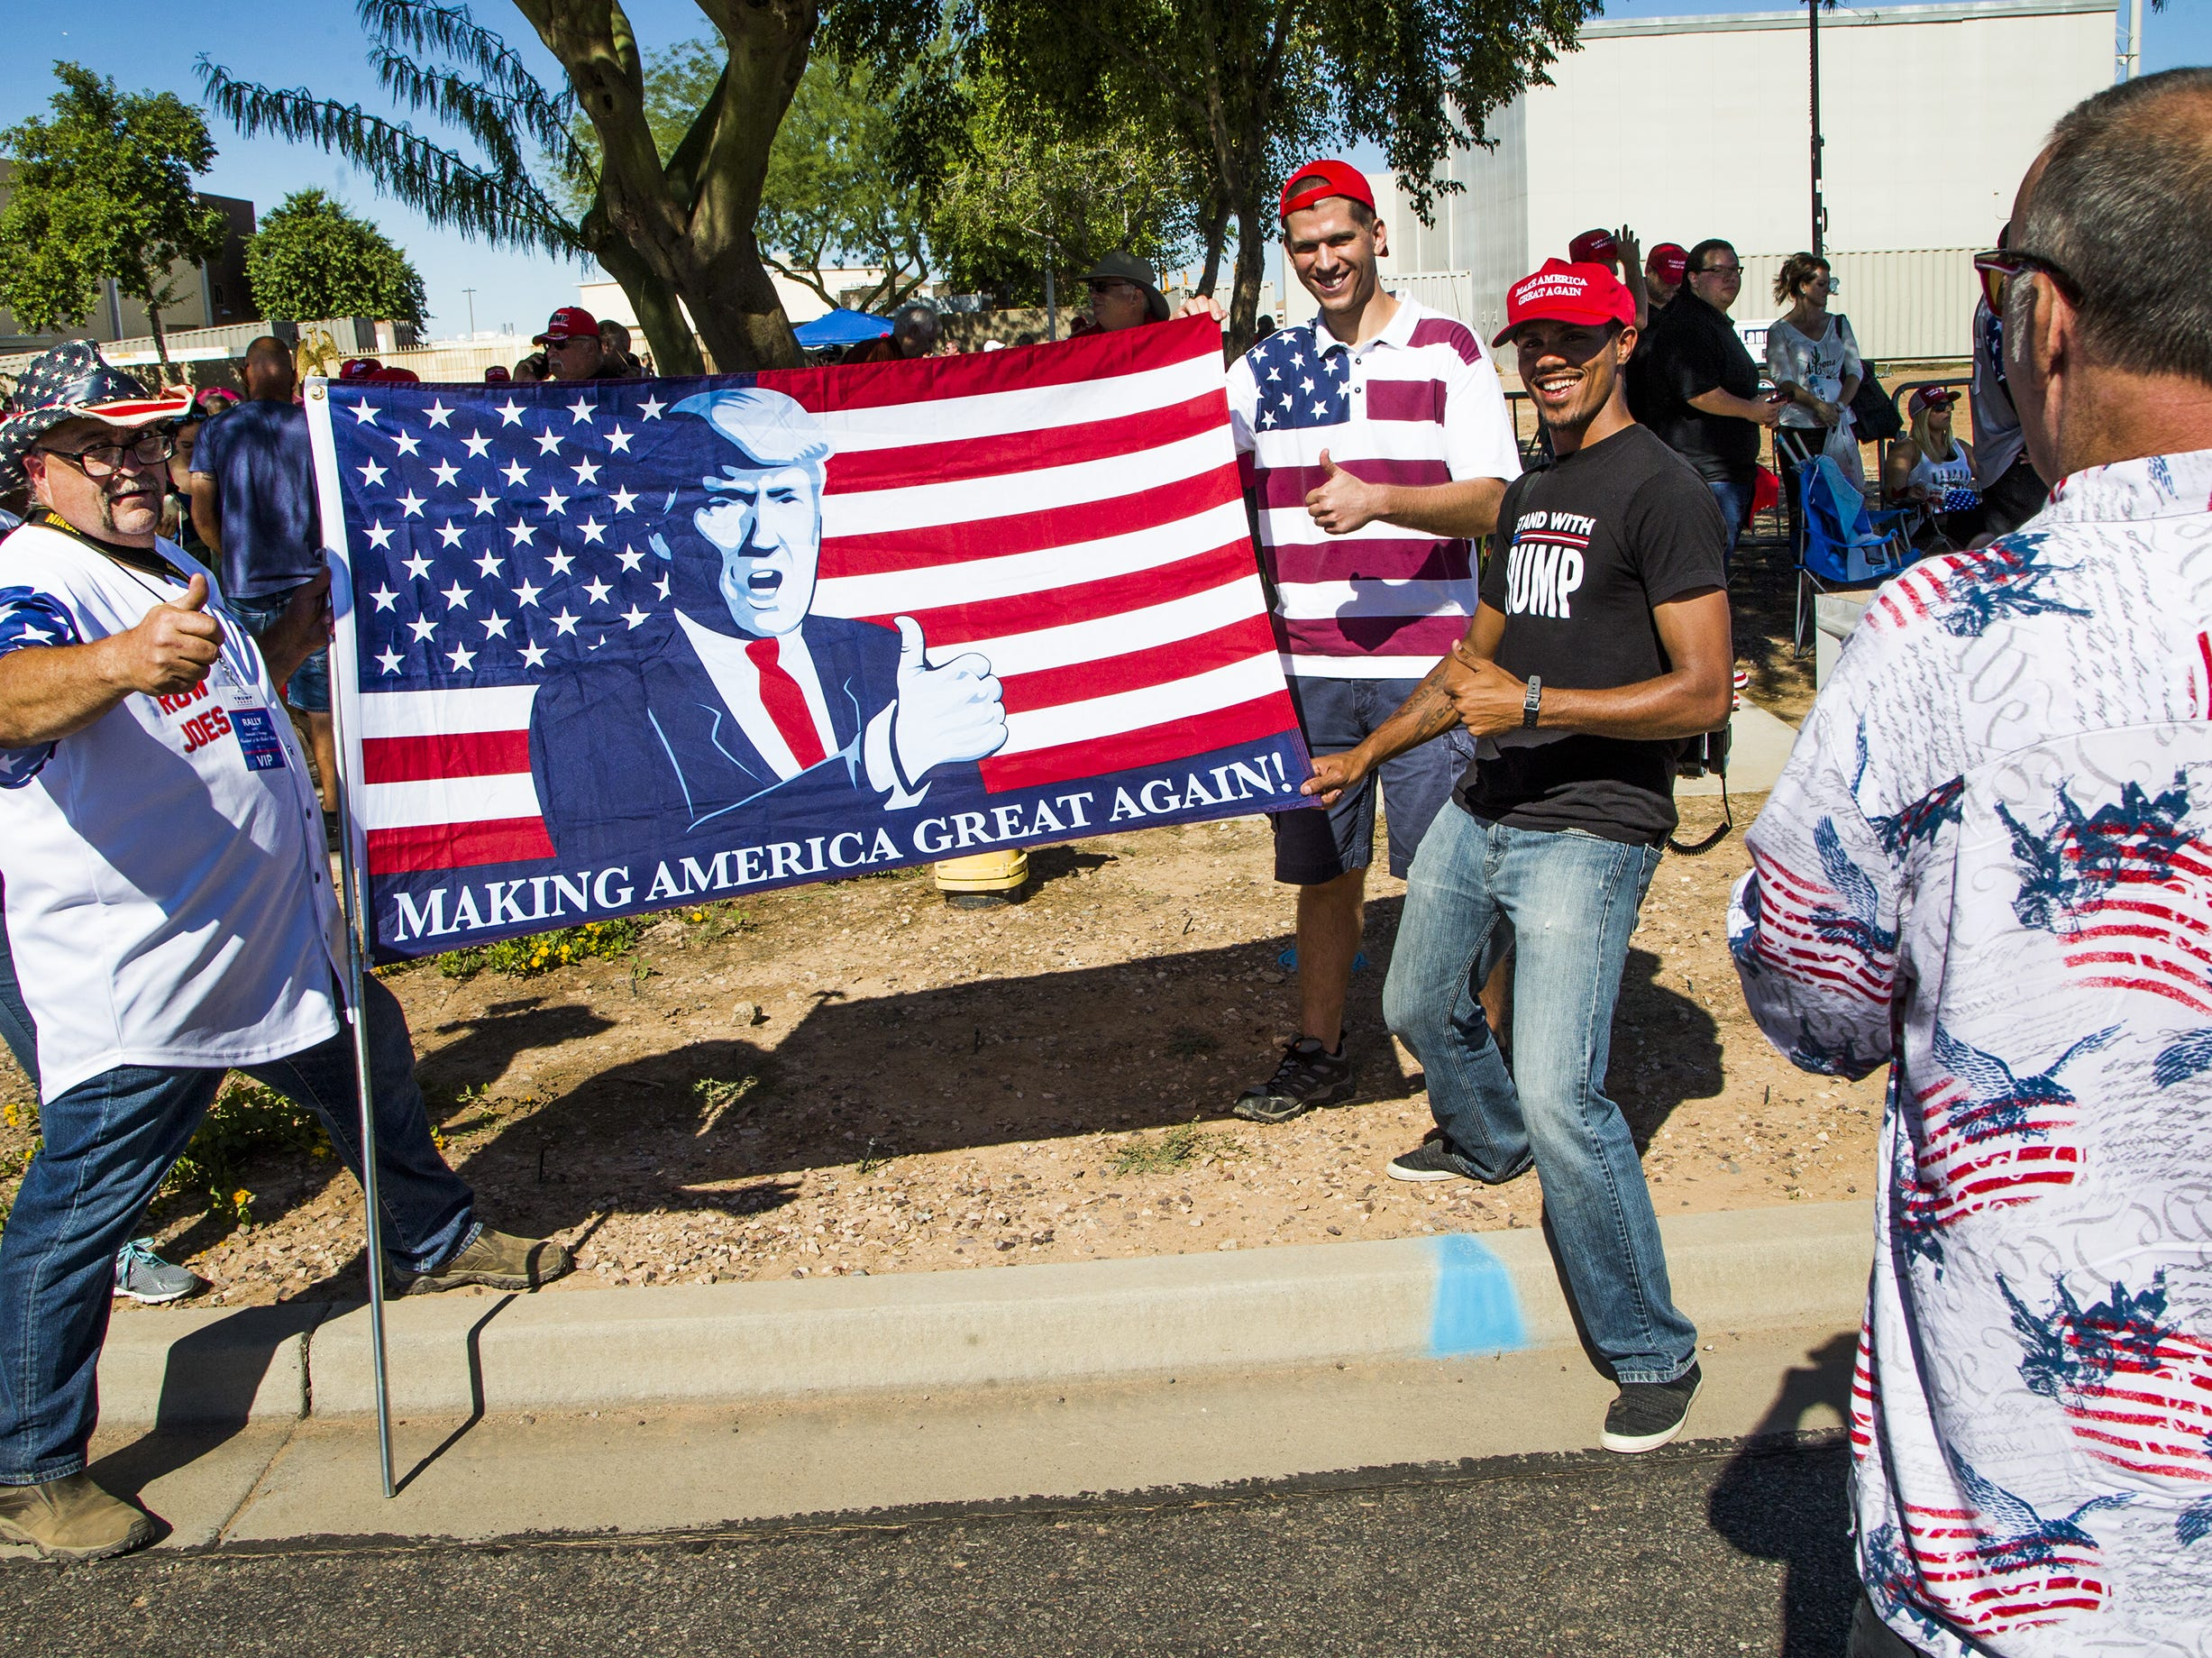 Fans of President Donald Trump wait in line to enter the International Air Response Hangar at Williams Gateway Airport on Oct. 19, 2018. Trump is set to appear Friday evening for a rally supporting Senate candidate Rep. Martha McSally.